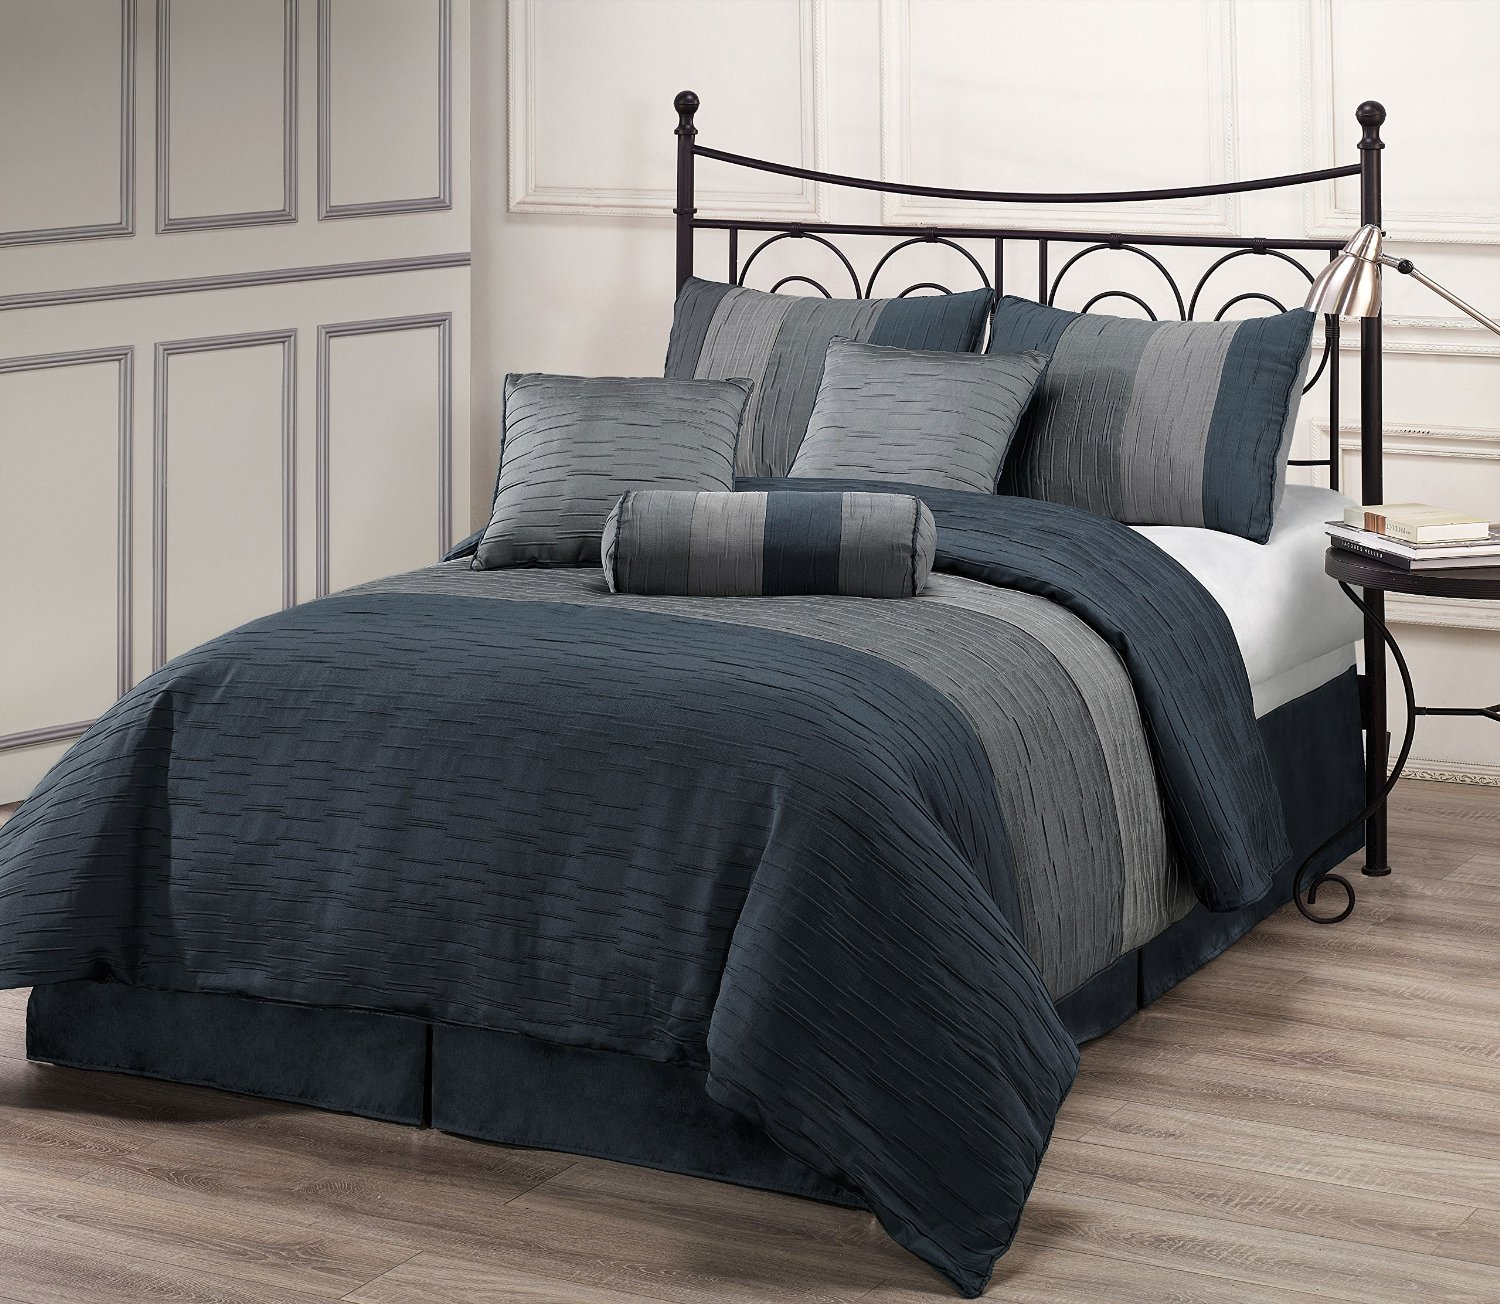 bedding full canada grey dark comforters queen bedroom pink discount purple set and silver black comforter white of size king gray sets all gold